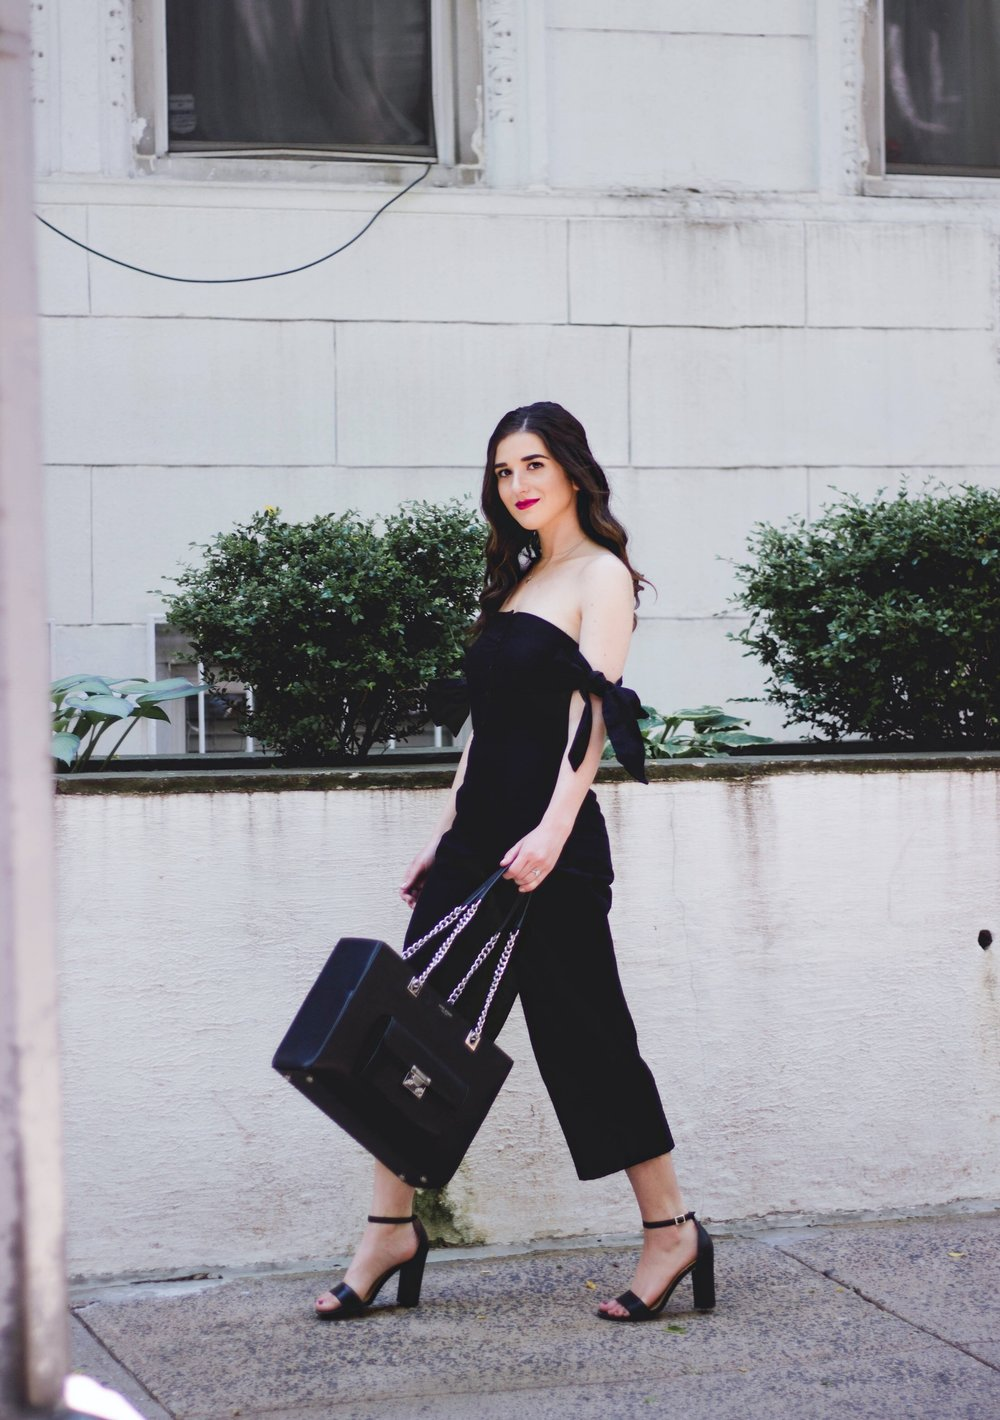 Black Asos Jumpsuit Prioritizing Life And Blog Esther Santer Fashion Blog NYC Street Style Blogger Outfit OOTD Trendy Monochrome Bag Purse Henri Bendel Beauty Model Photoshoot Shoes Wear Heels Sandals Open Toe  Hair Red Lips Pretty Summer Pants Girl.JPG